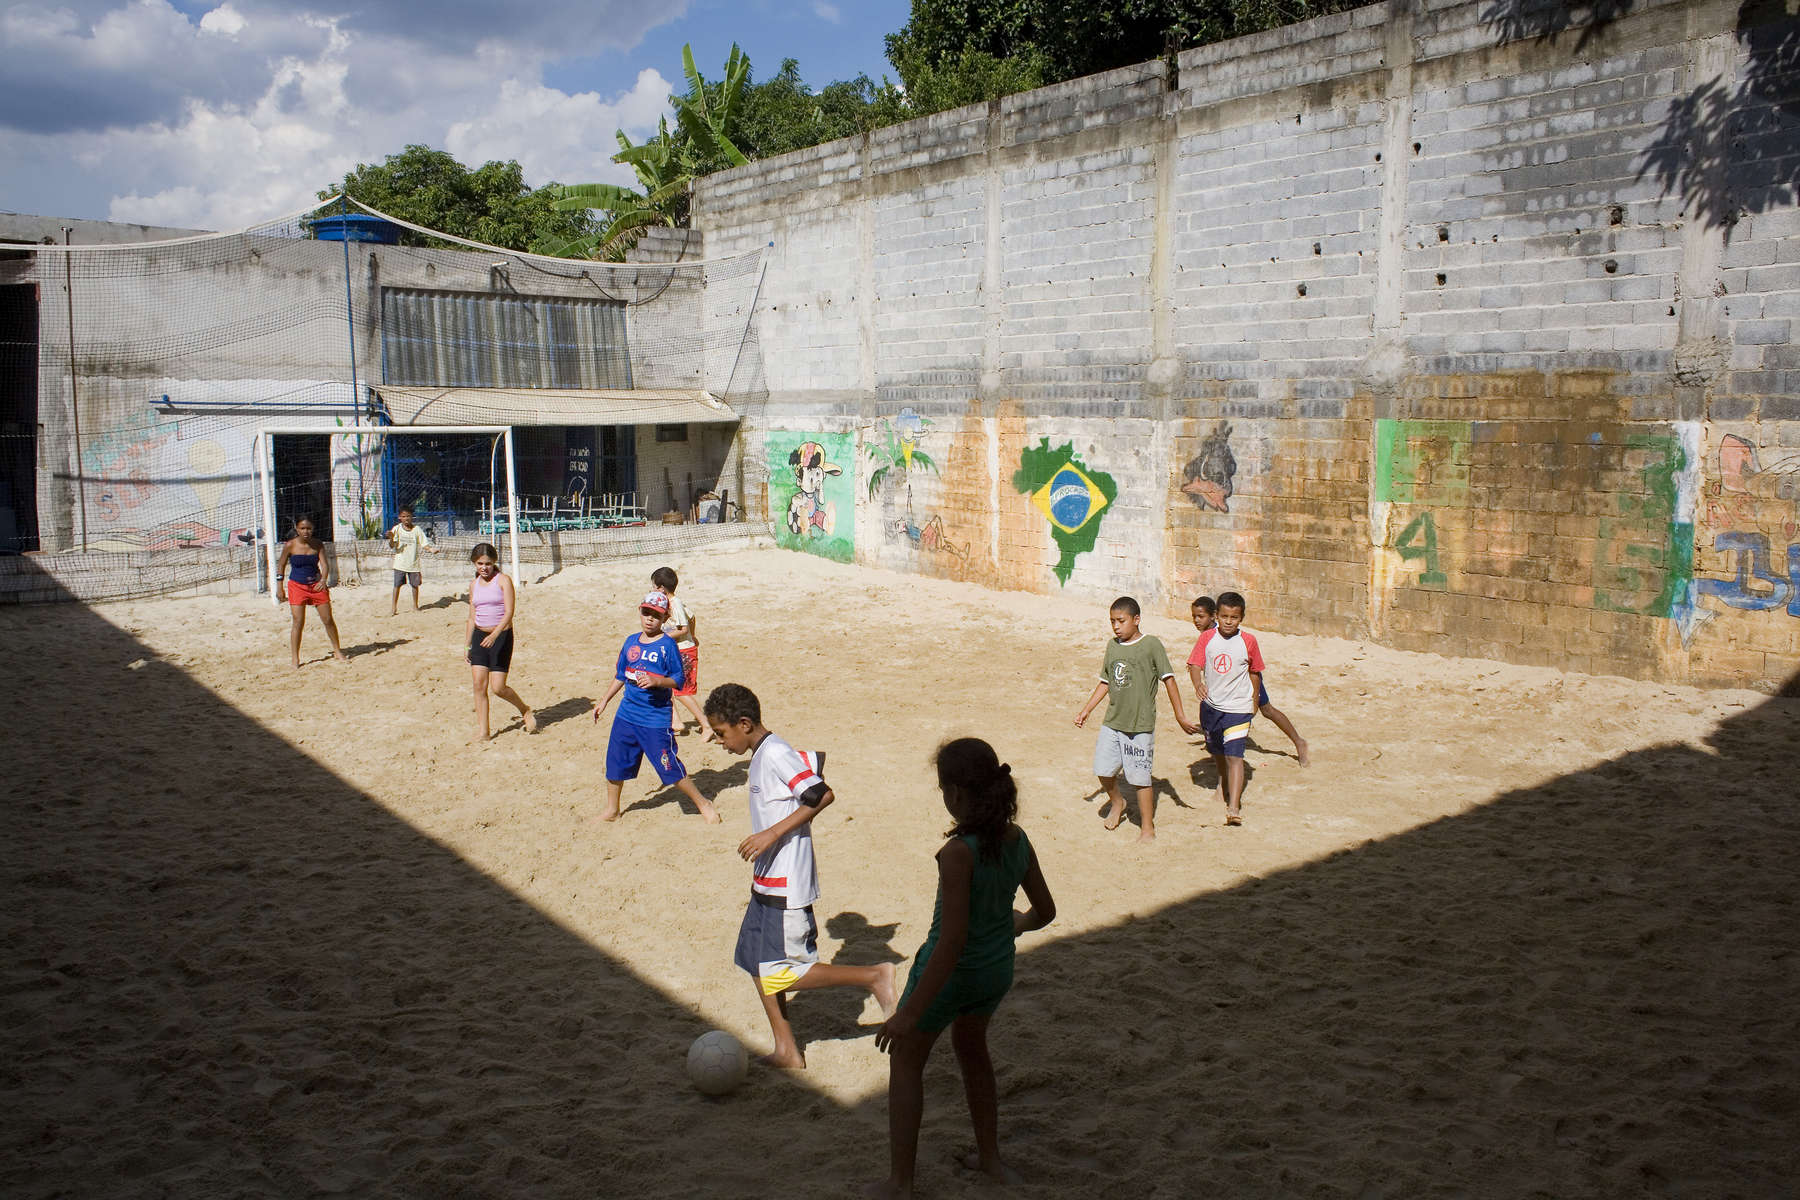 Brazilian kids play beach football at the EPROCAD centre in Sao Paulo. Football is used to transform chldren with low self esteem and negative perception into critical proactive citizens.In disaster areas, war zones and urban wastelands, football keeps humanity alive. It brings nations together and promotes unity. It encourages equality and generates pride and self-belief. It has the power to heal and to help, to motivate, to give freedom to dreams and empower a generation. There are millions of people playing the game or helping it to flourish who find that football brings a positive dimension to their lives.Away from the billionaire owned clubs with it's multi-million dollar players, Football's Hidden Story is a series of emotive human interest photographs showing the positive impact football has had at grassroot level on individuals and communities all around the world.